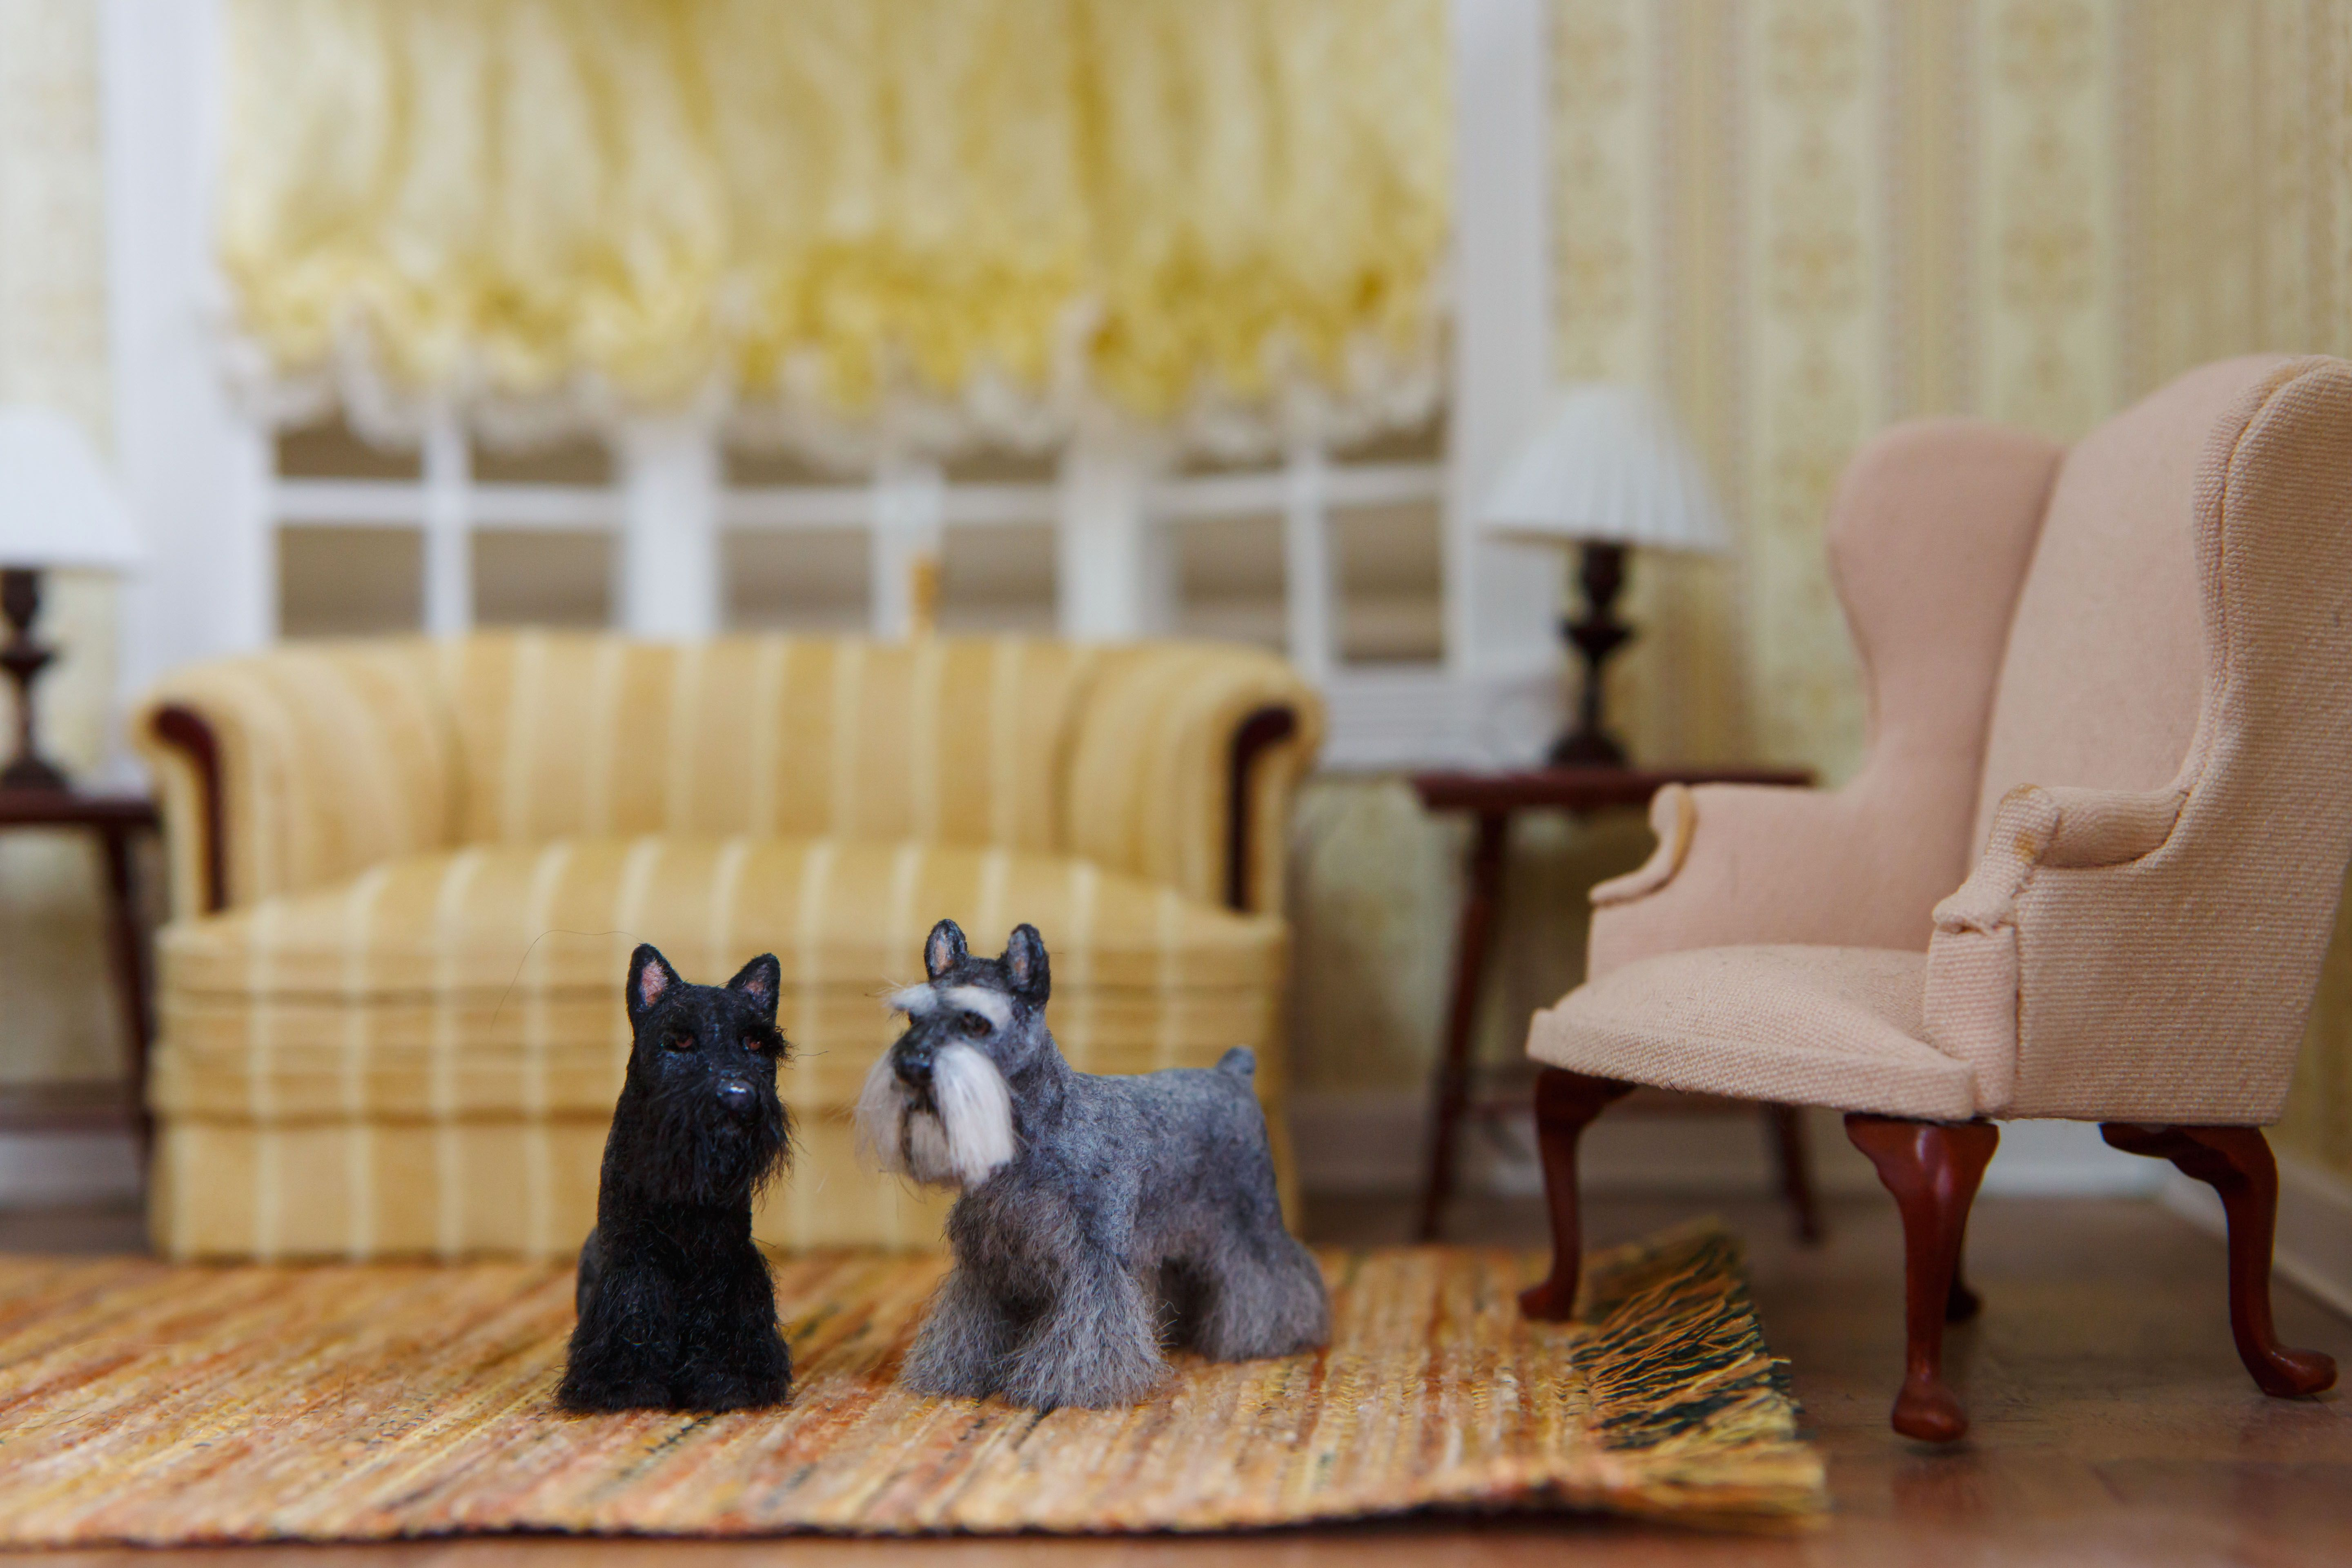 Dollhouse Miniature Schnauzer  1:12 Scale Artist Created and Furred  Visit my site on Etsy!